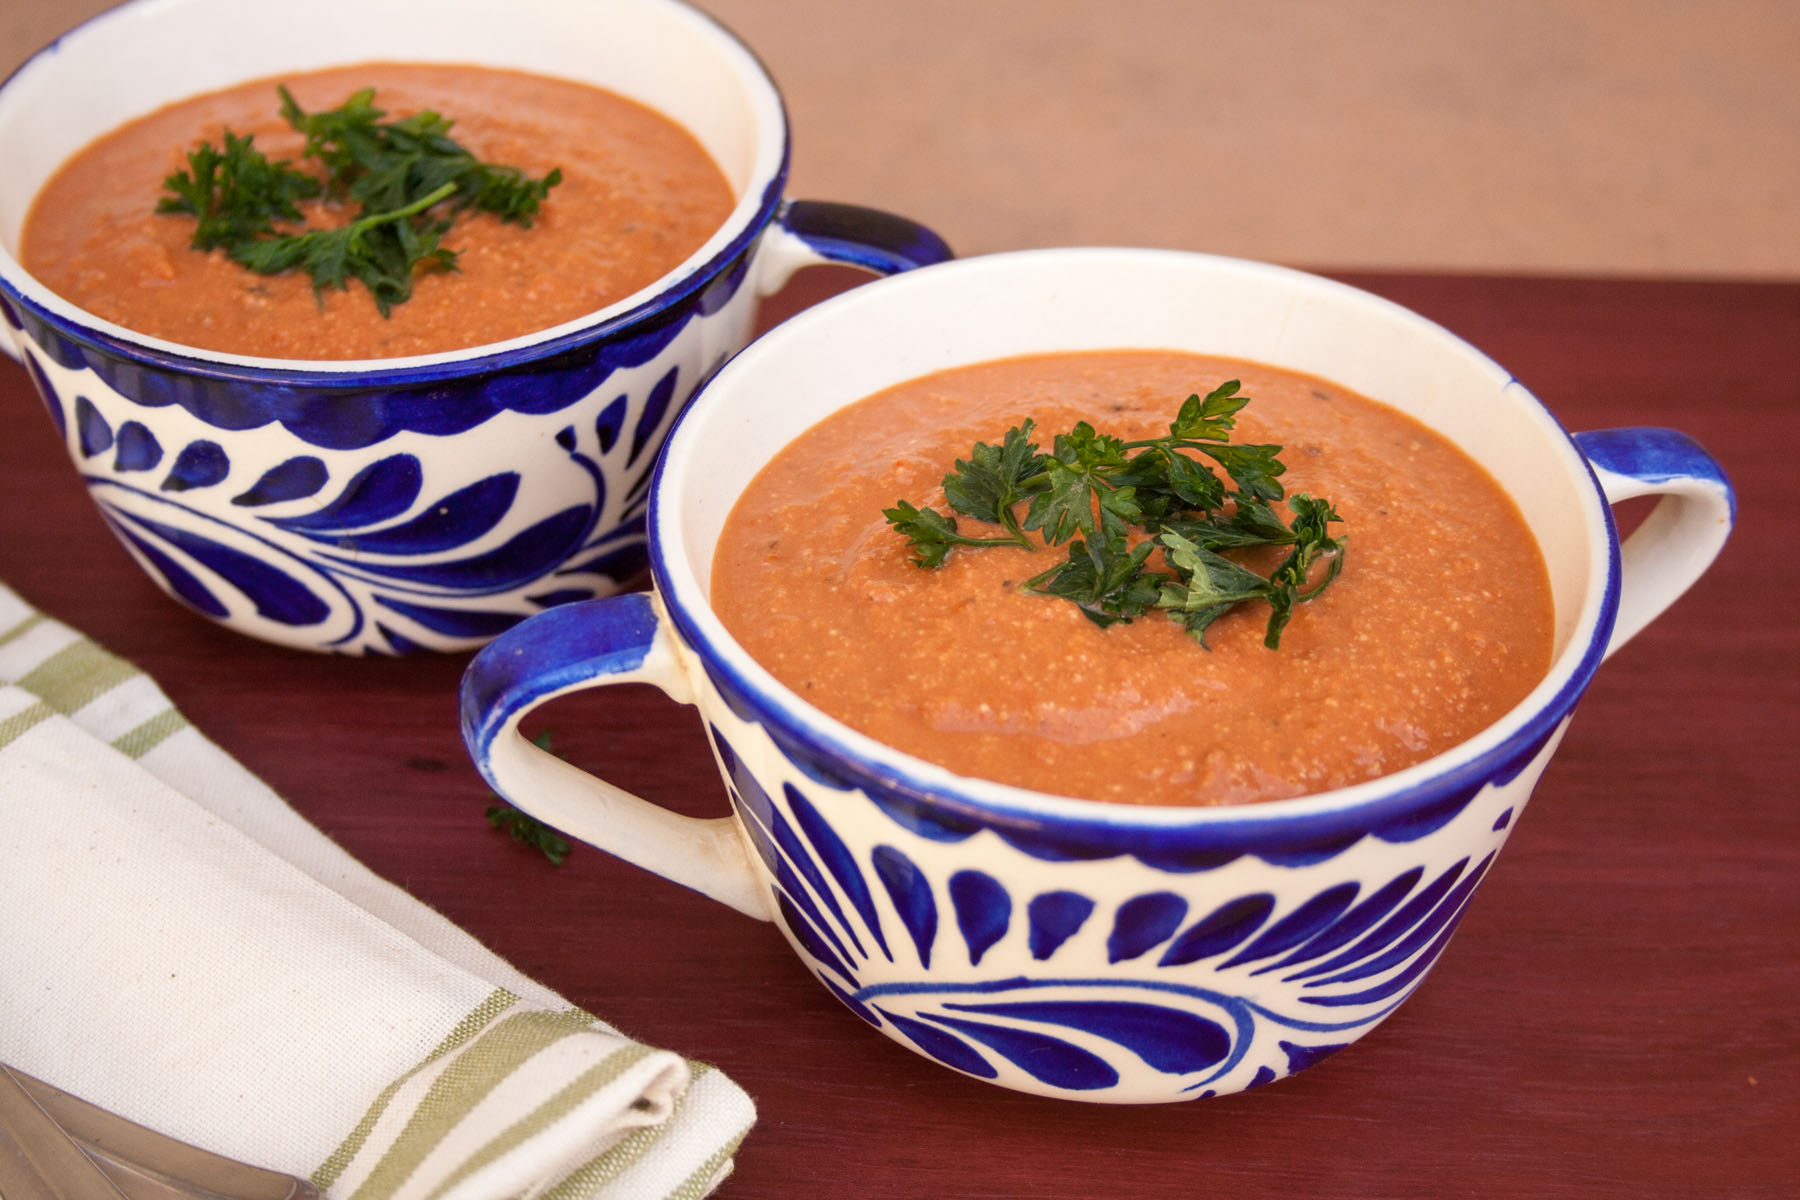 Creamy Tomato Soup with Balsamic Vinegar